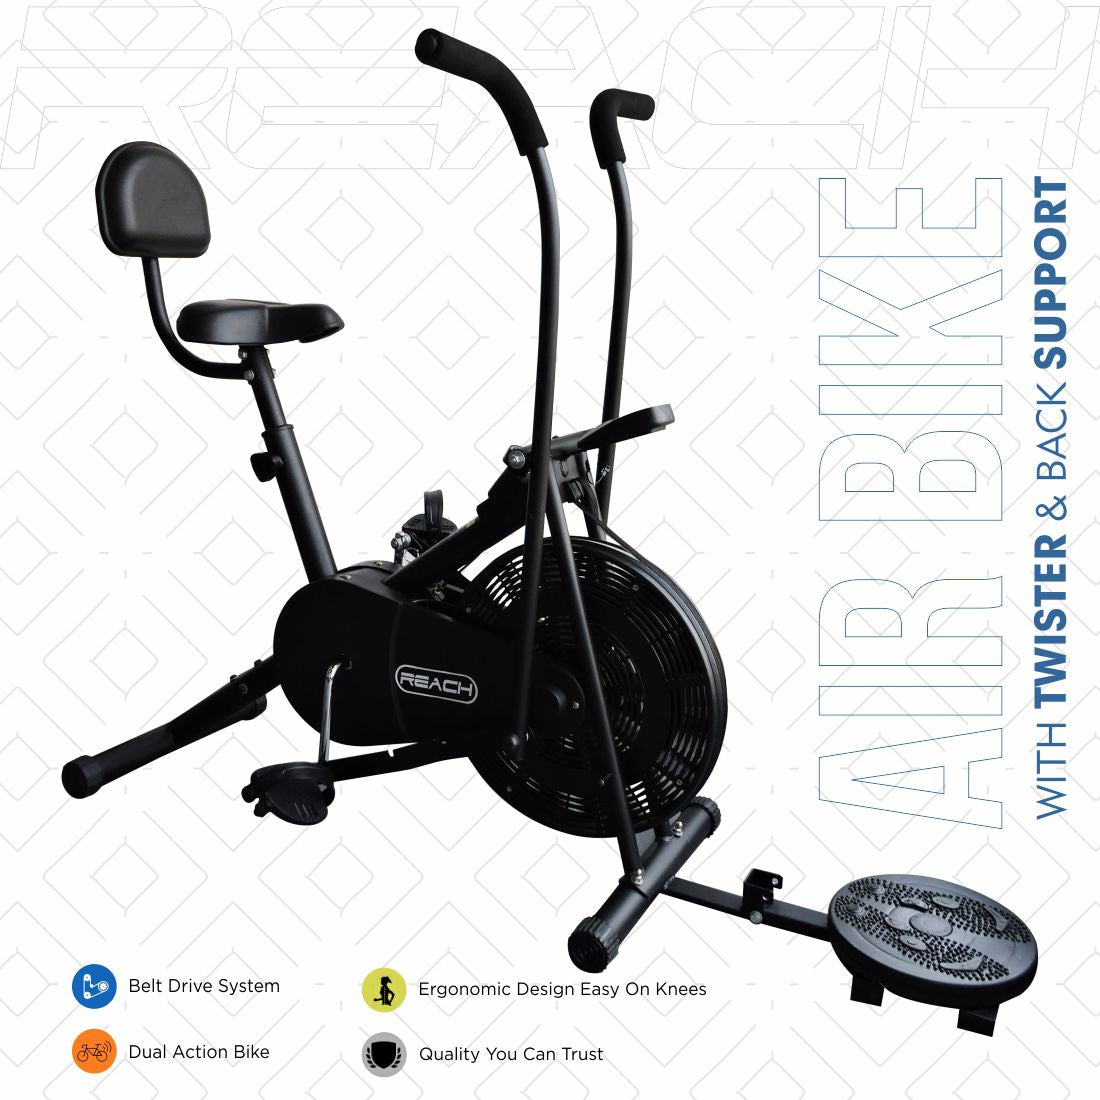 A black Reach Air Bike (moving handles) on a white background with a twister and back support attached.